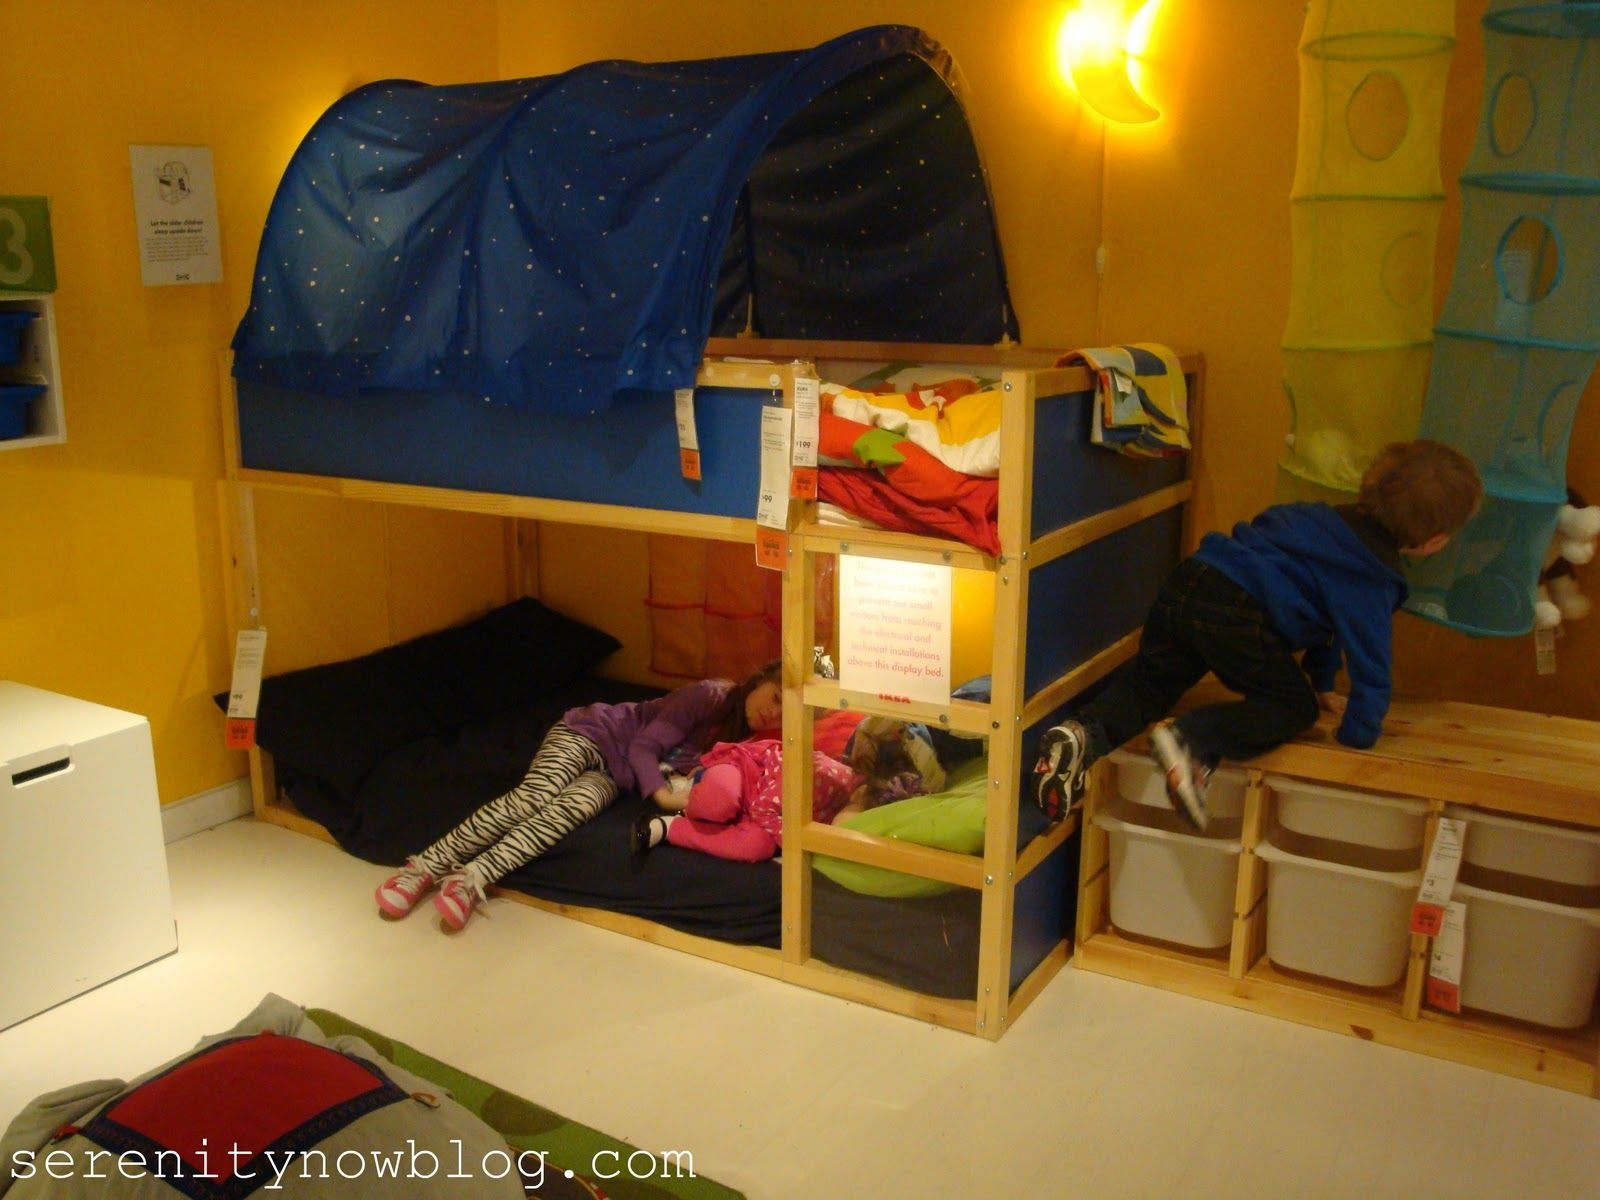 Children S And Kids Room Ideas Designs Inspiration: Bedroom : Ikea Kids Room Loft Bed Design Awesome